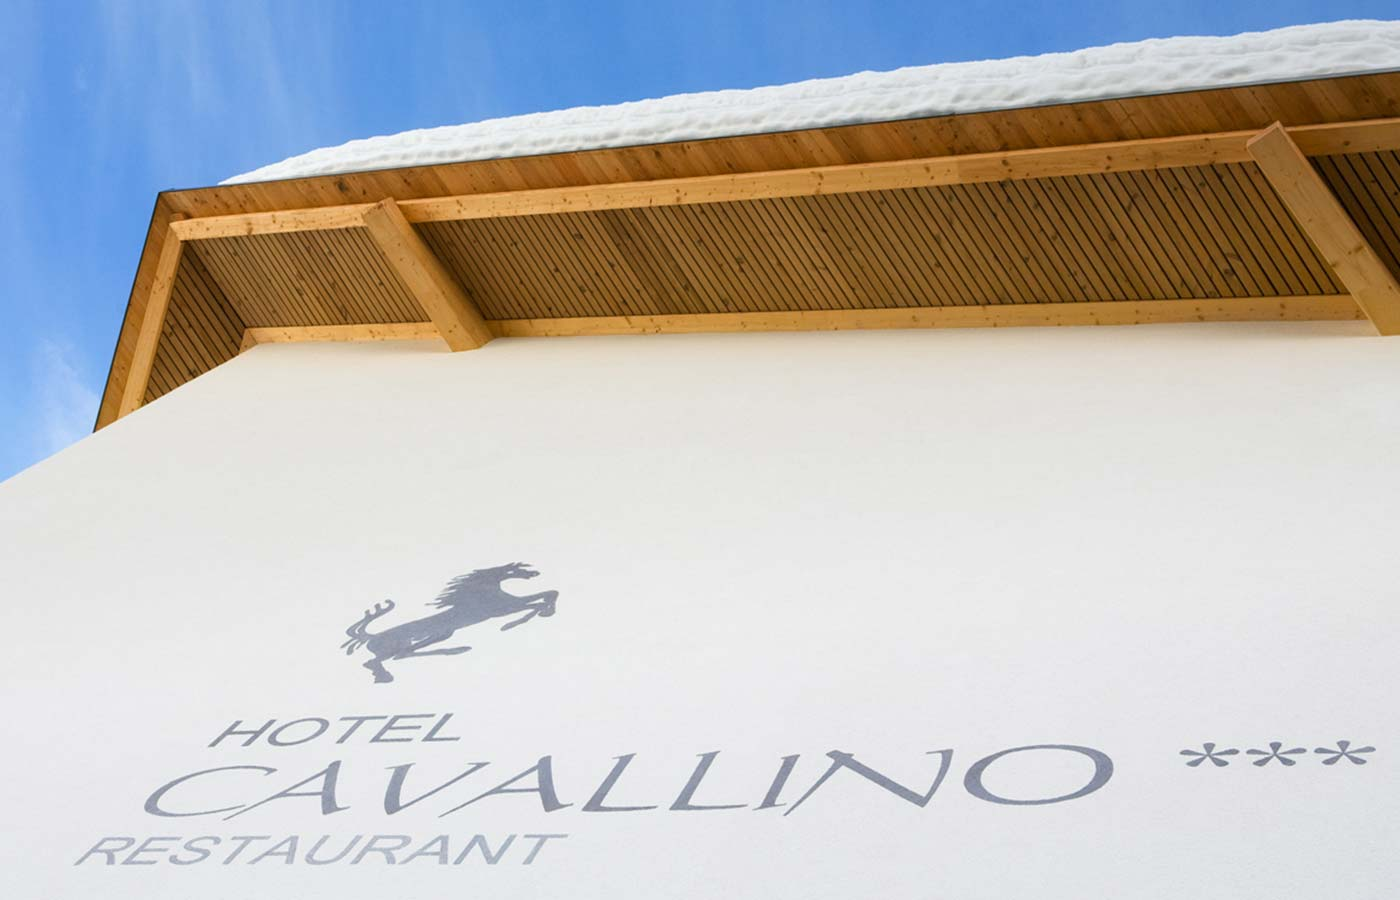 Writing 'Hotel Cavallino' on the hotel front